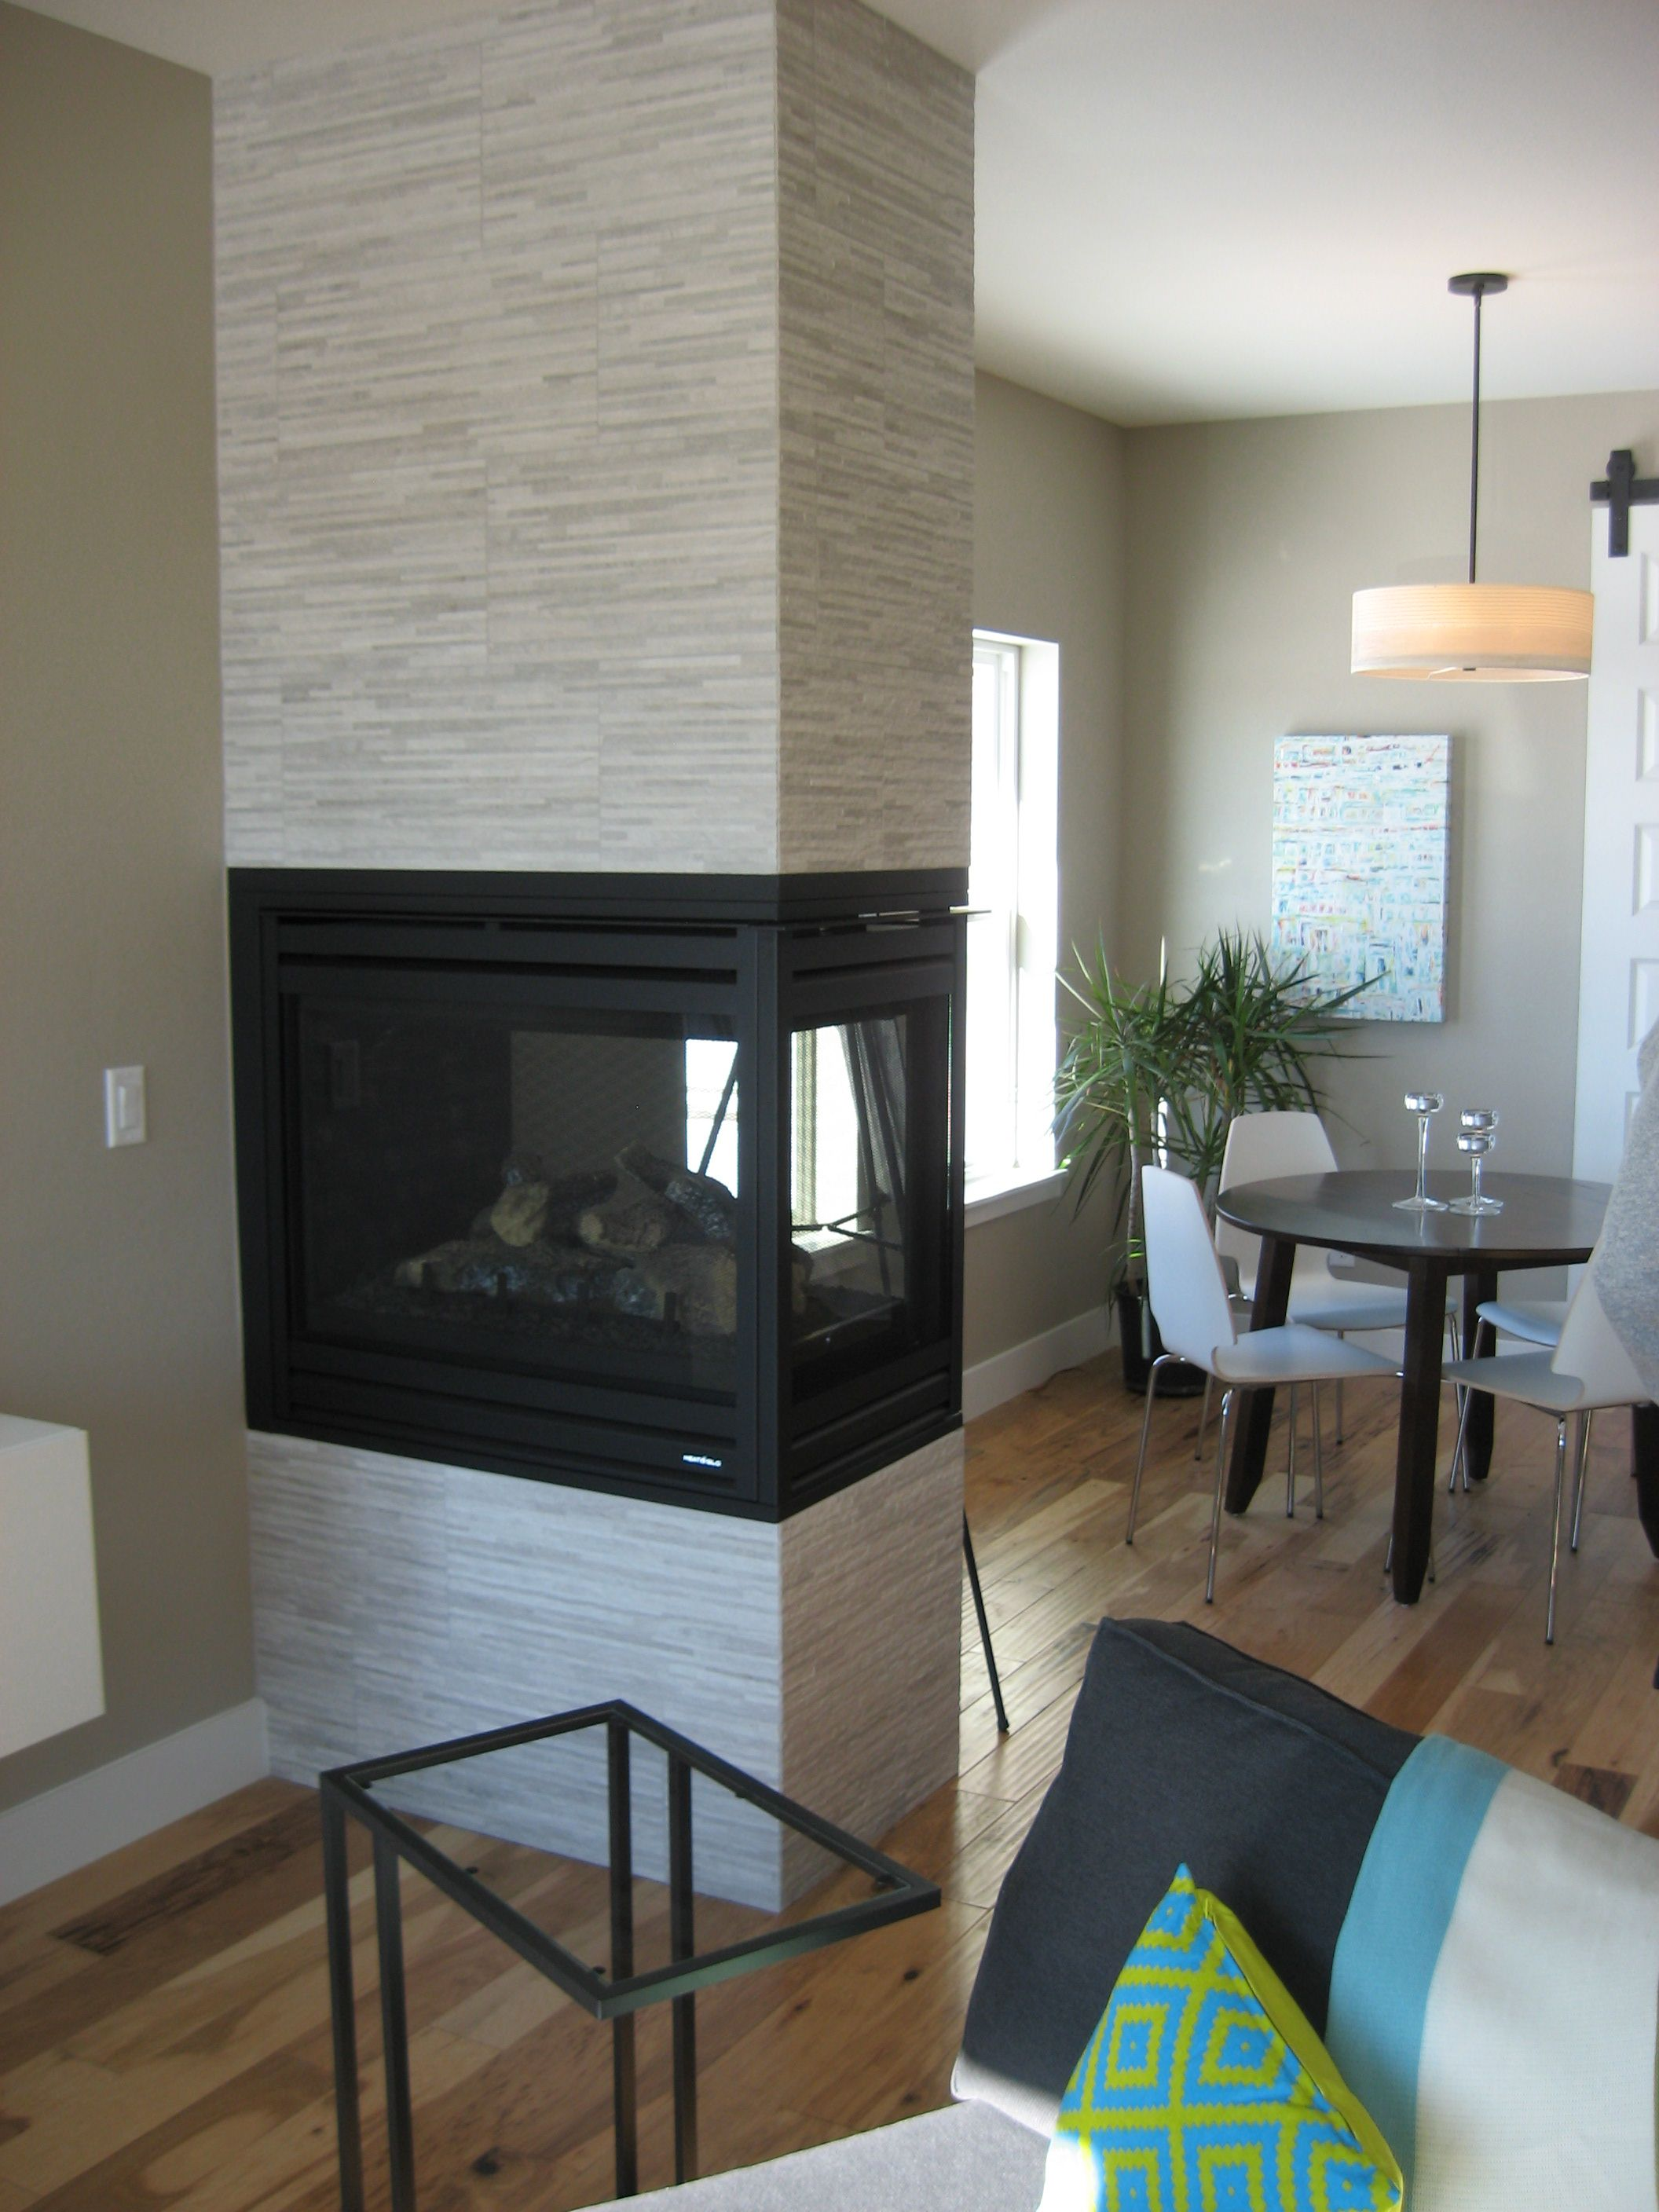 3 Sided Fireplace Focal Point Interior Room Fr Development Fort Collins Colorado